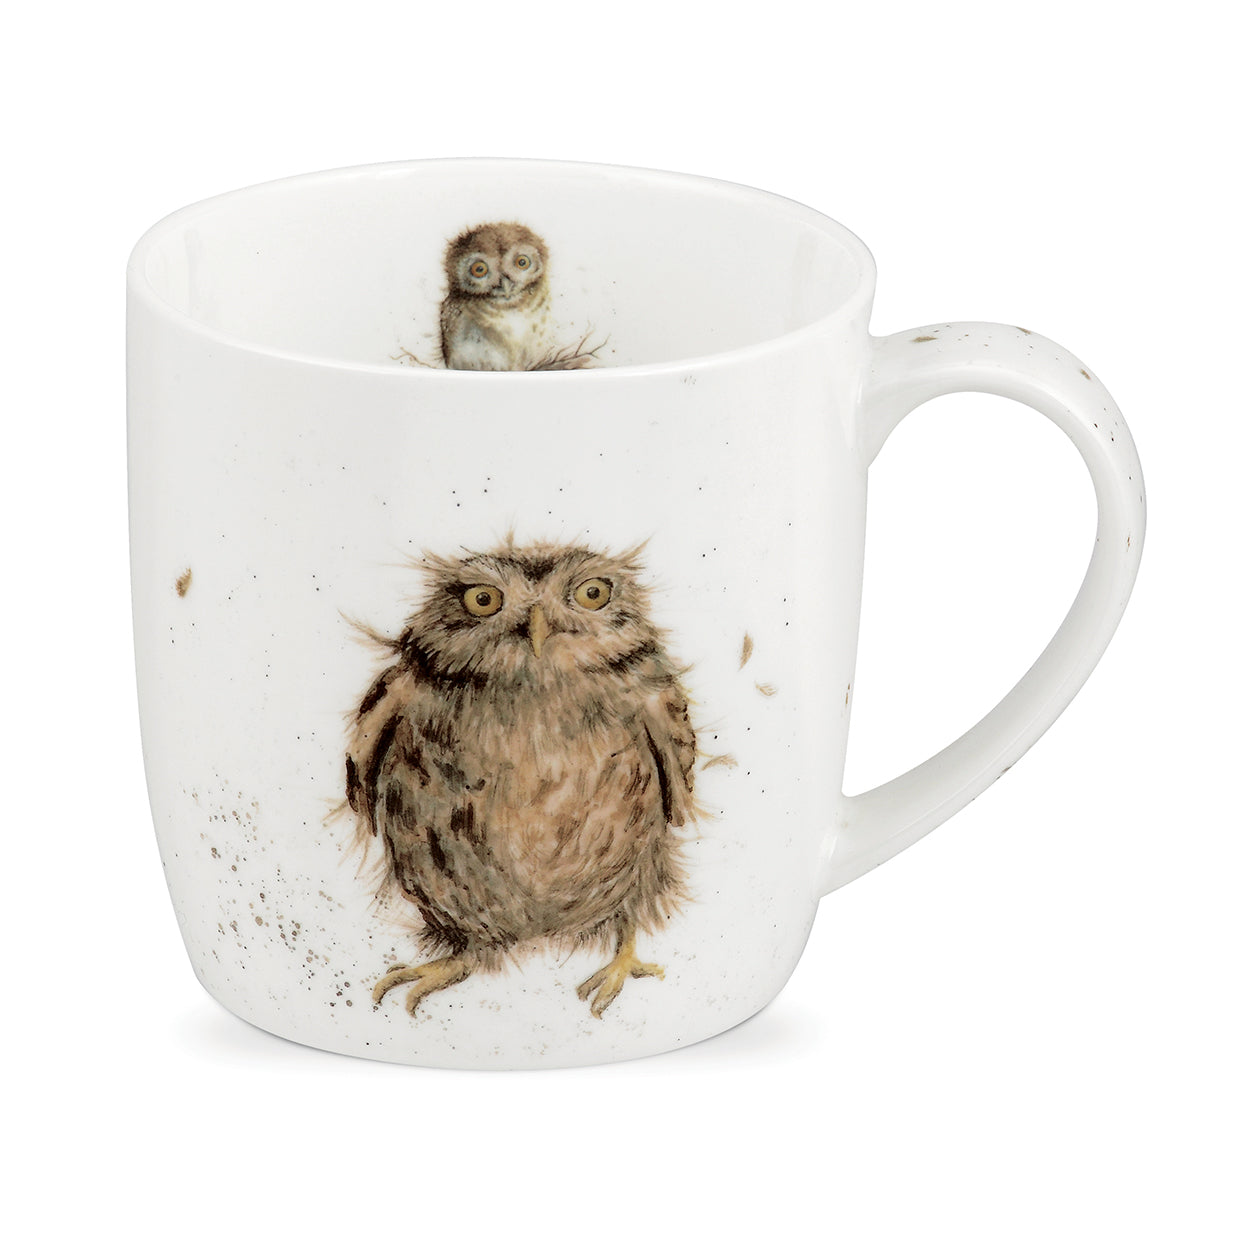 Wrendale Designs Bone Fine China Mug - 'What a Hoot'